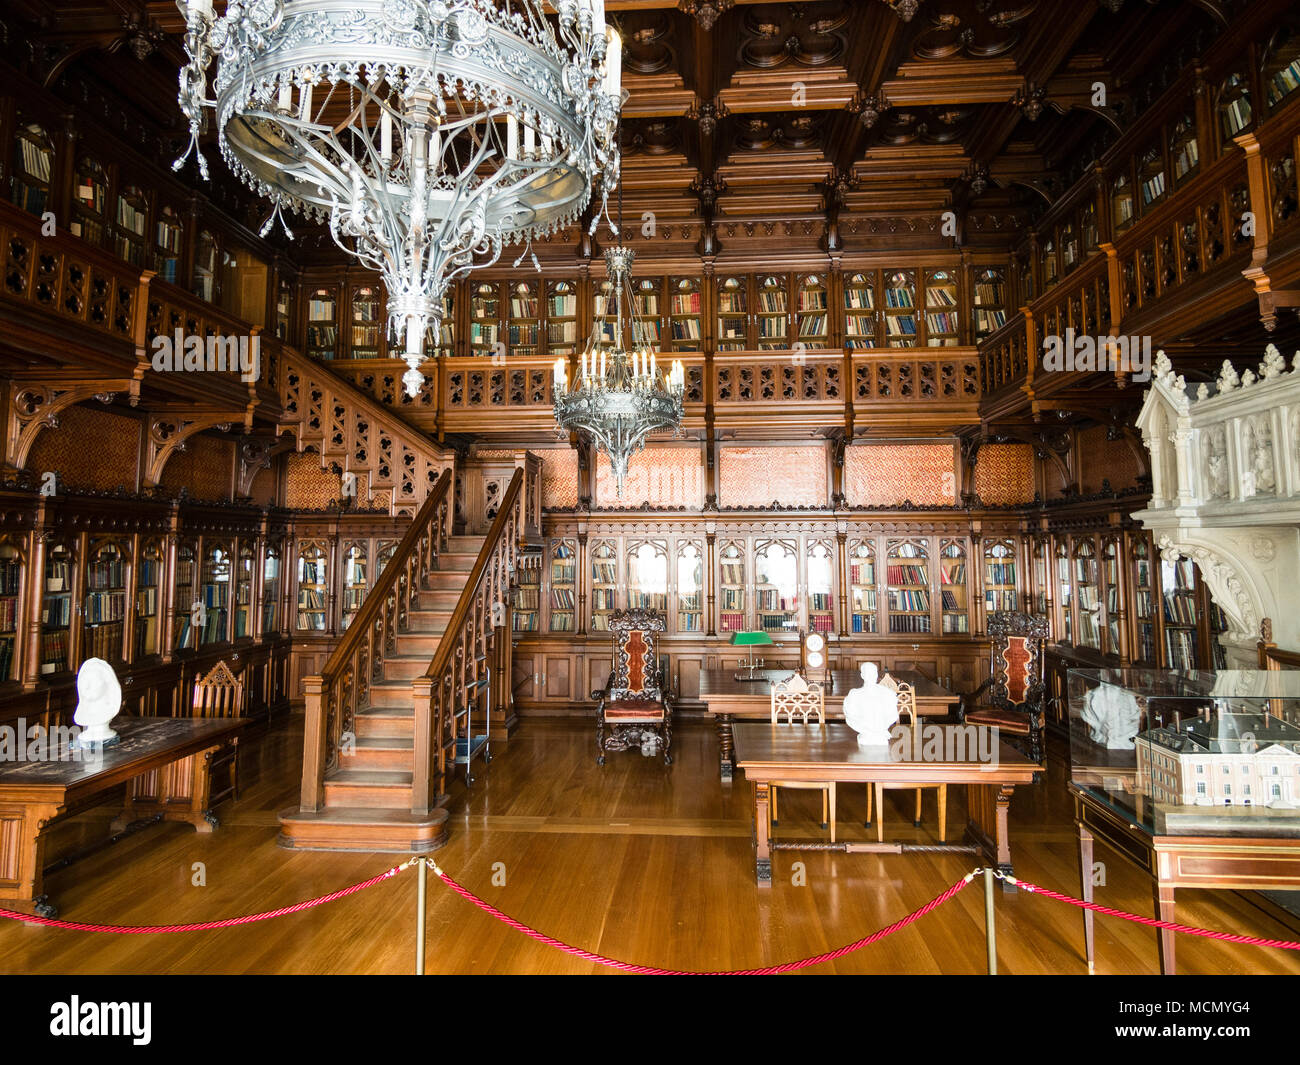 St. Petersburg, Russia: Winter Palace interior, Hermitage Academic Library - Stock Image